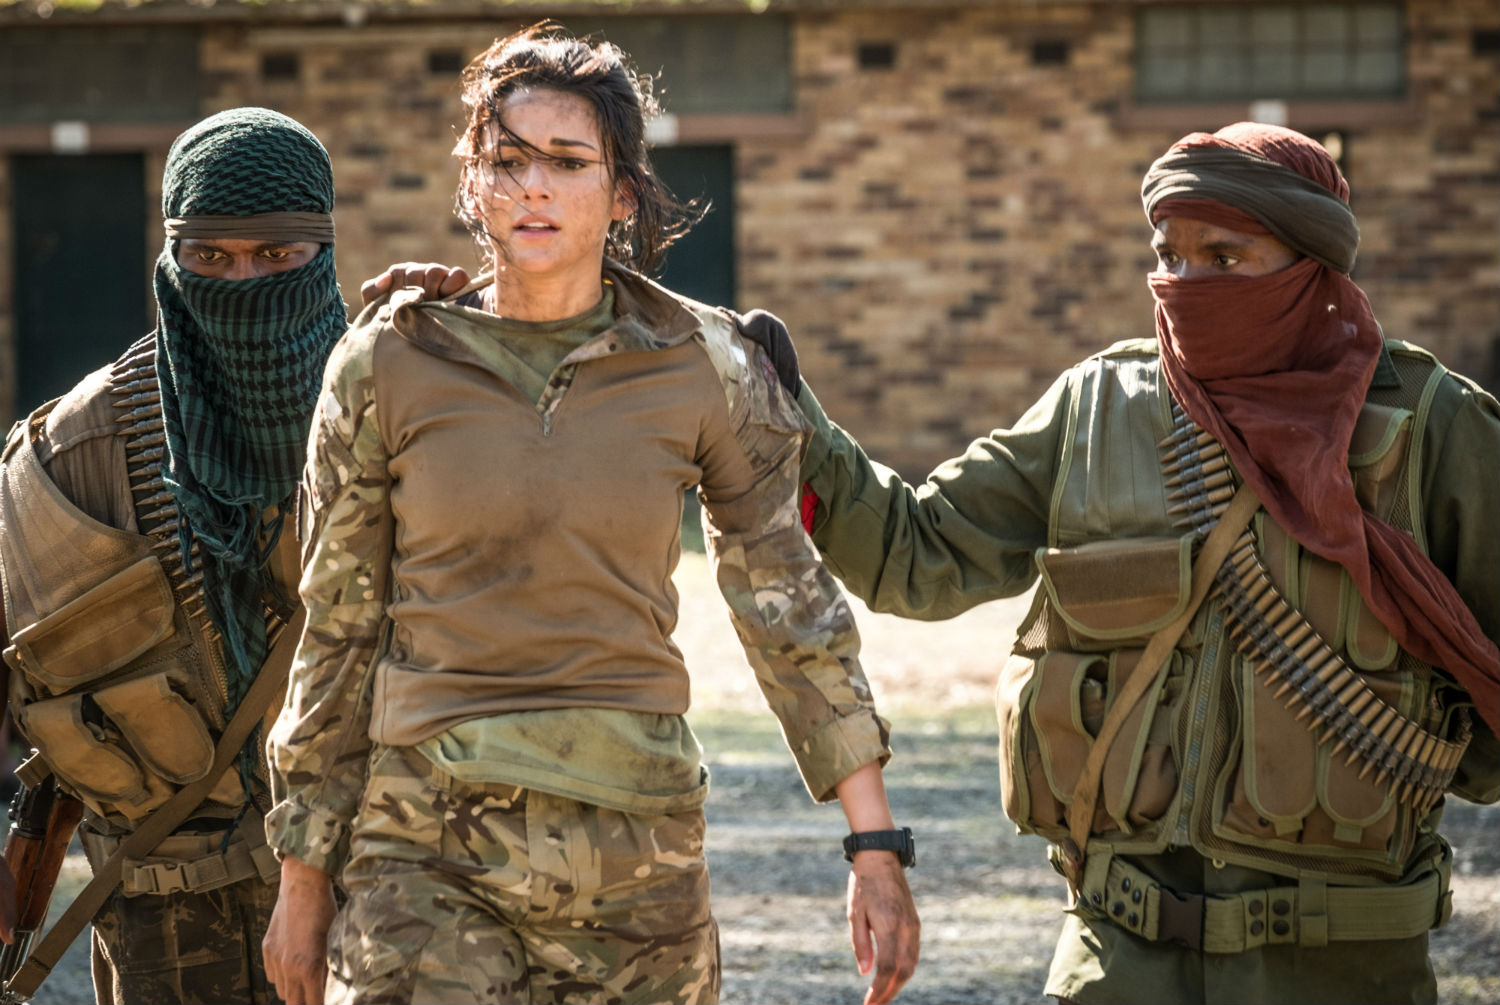 Michelle Keegan reprises her role as Corporal Georgie Lane in the upcoming series